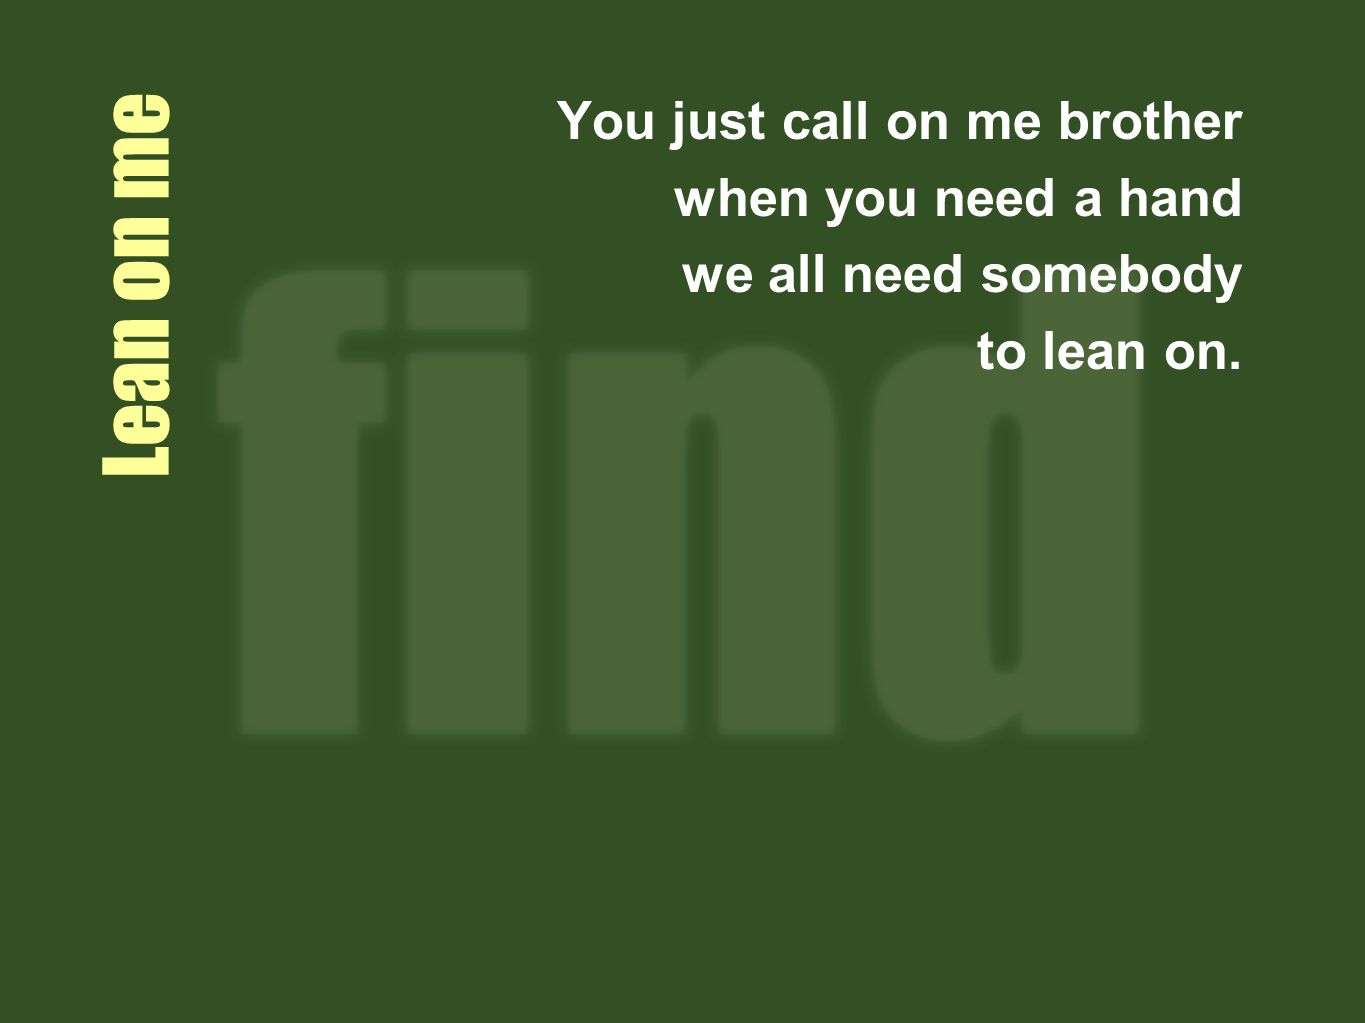 Lean on me You just call on me brother when you need a hand we all need somebody to lean on.